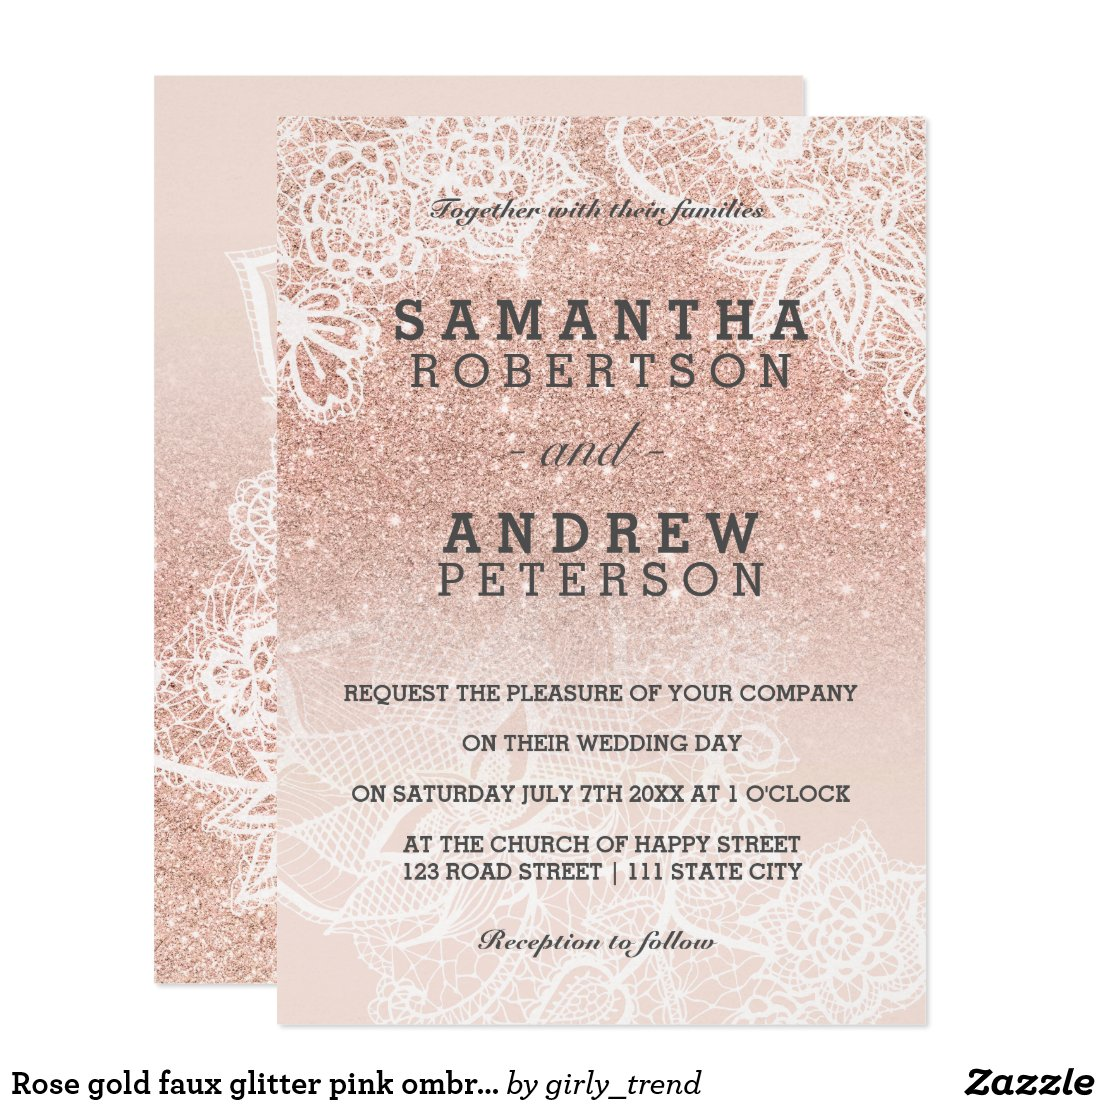 Rose gold faux glitter pink ombre lace wedding